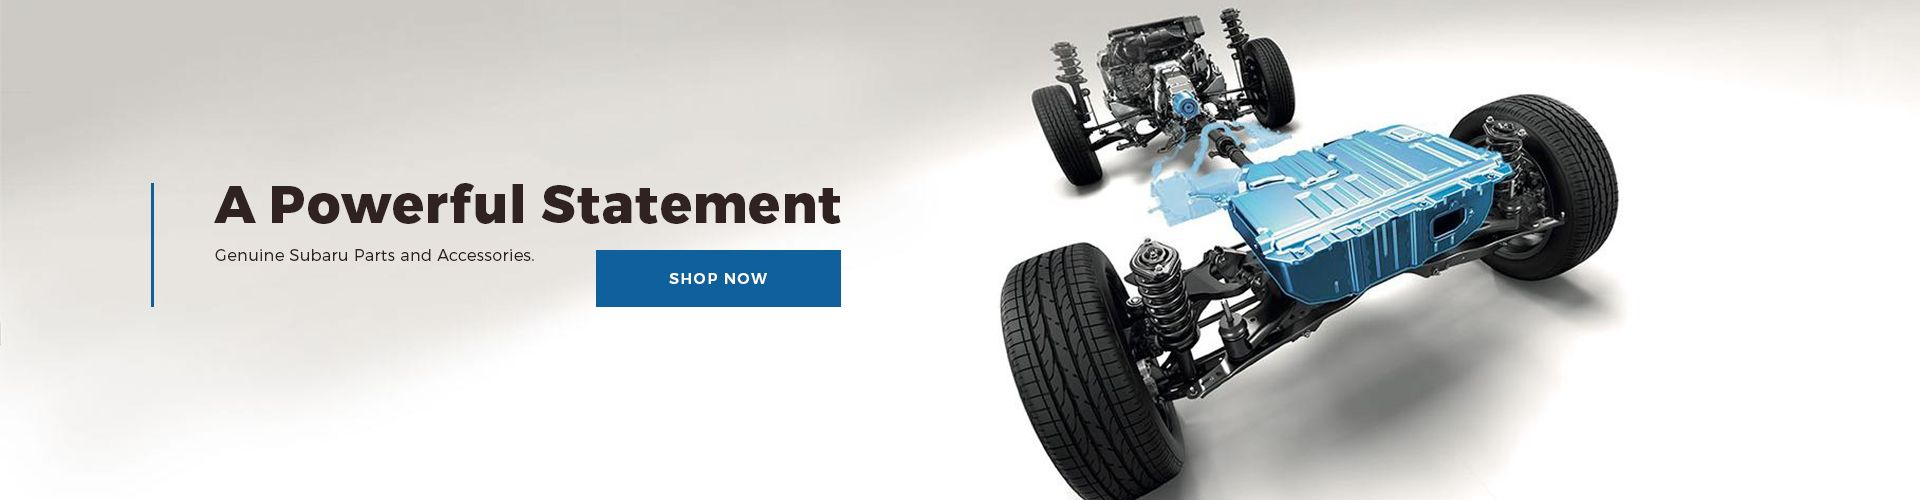 Browse OEM Subaru Parts & Accessories | Your Subaru Parts